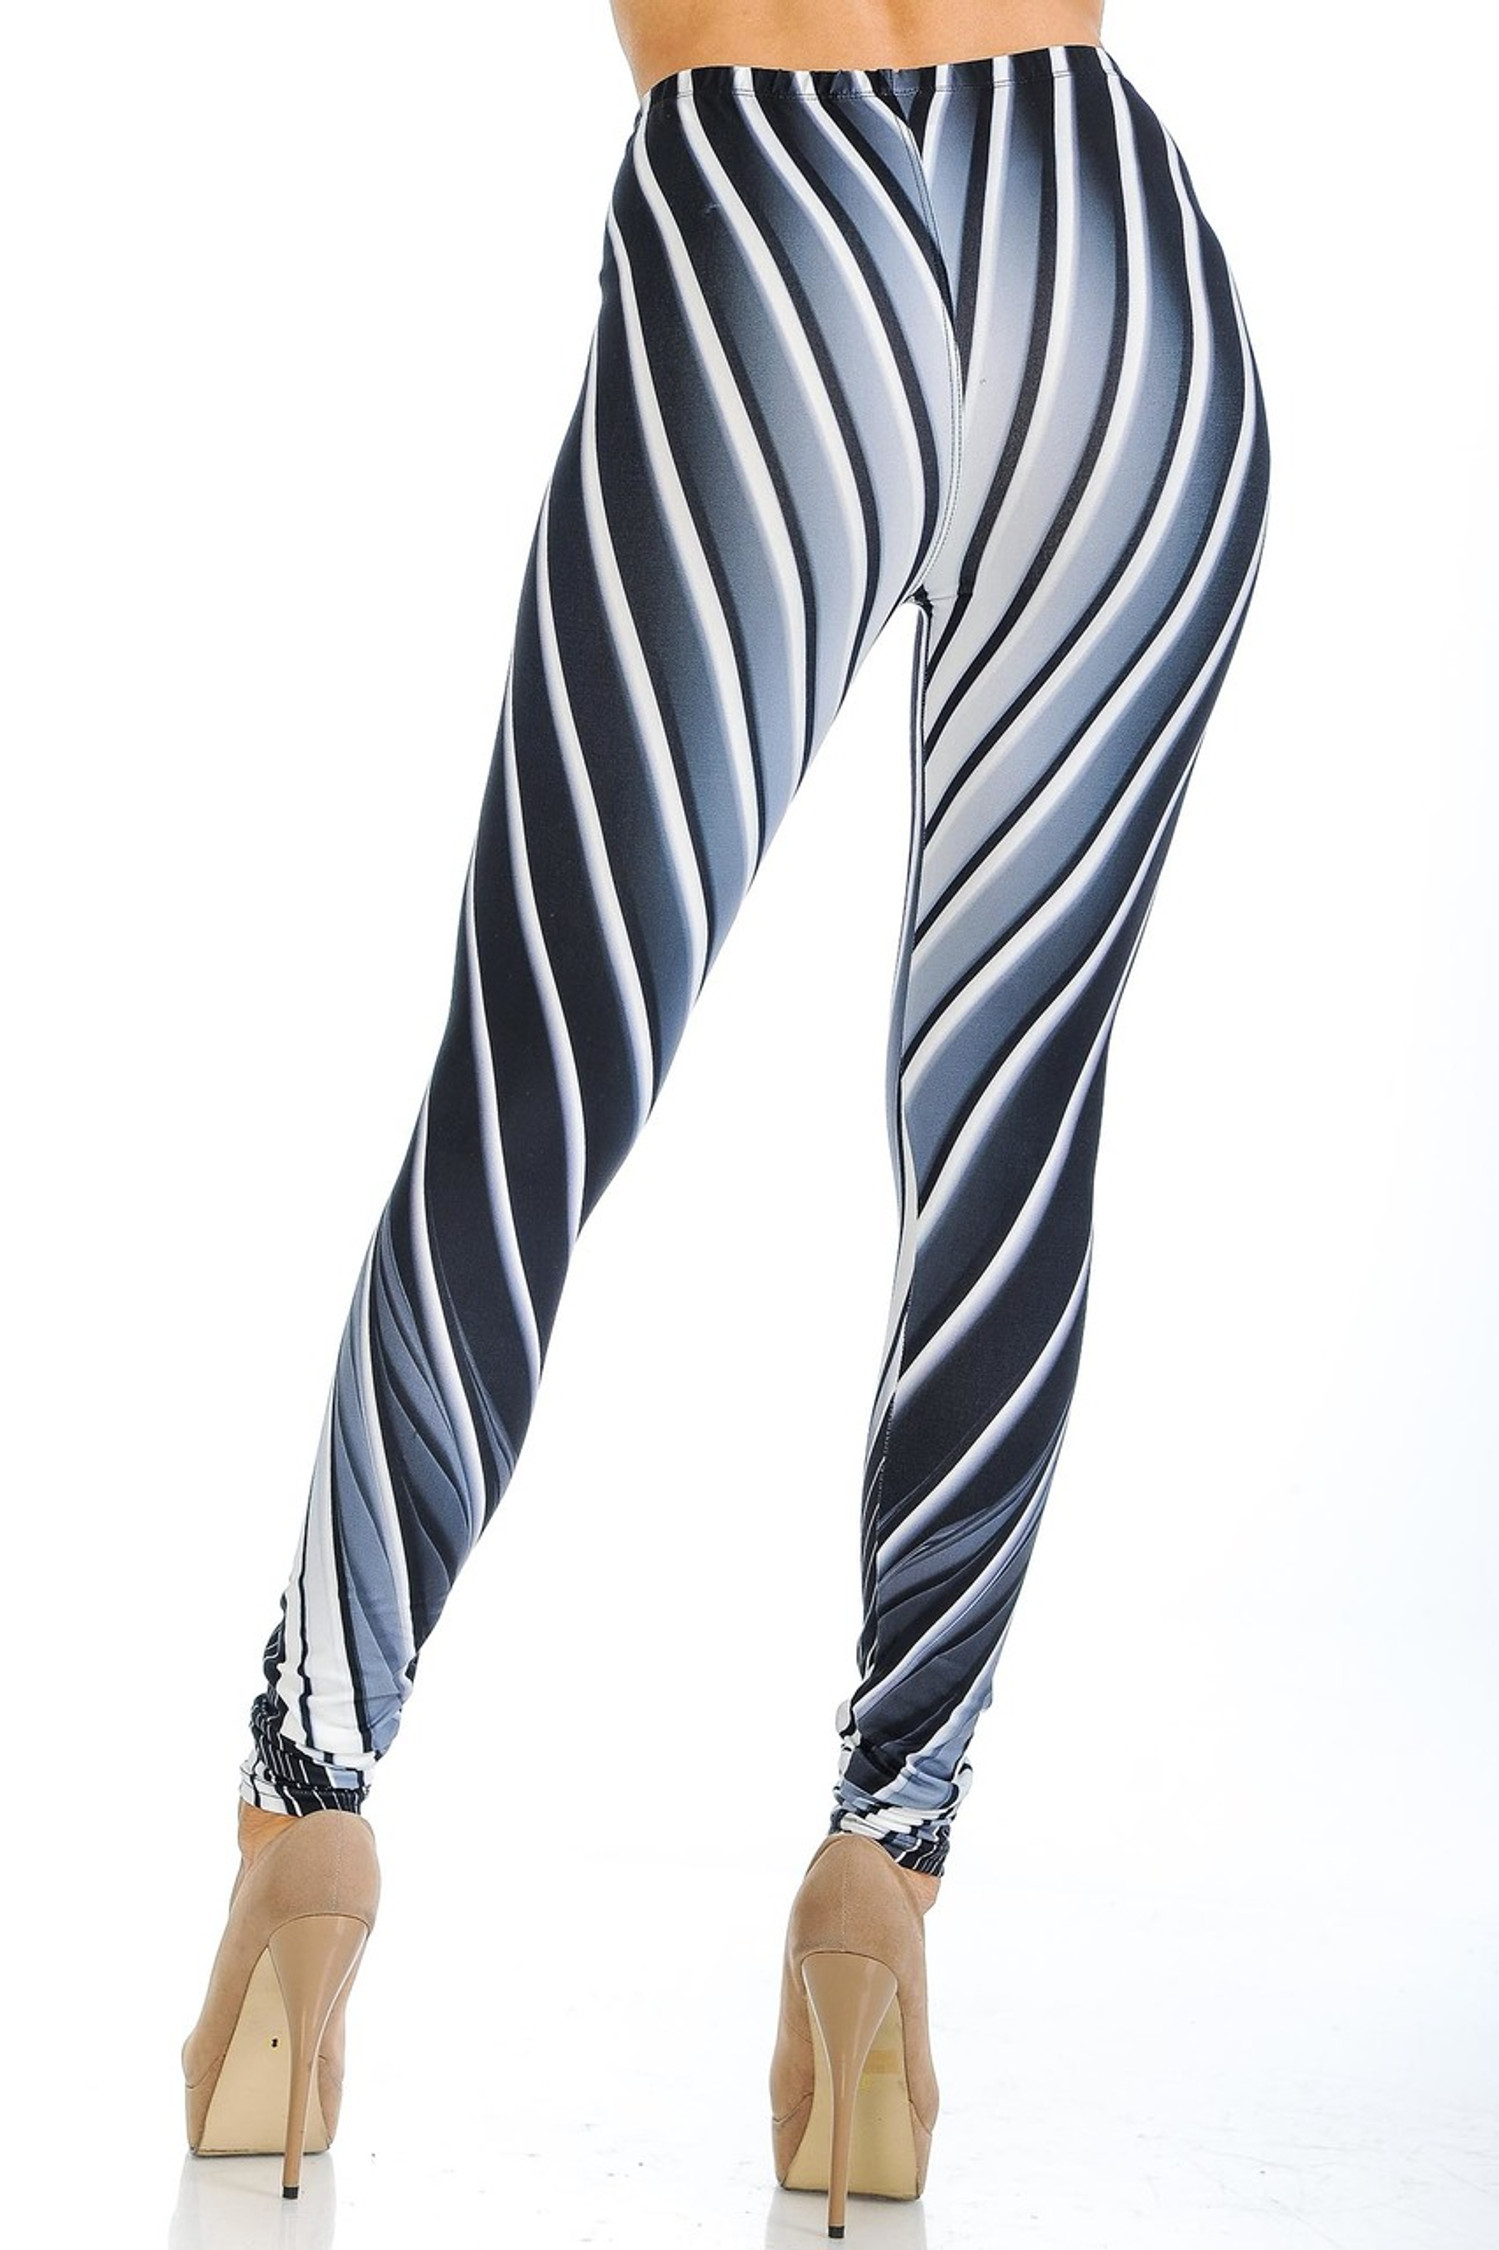 Creamy Soft Contour Body Lines Leggings - Signature Collection